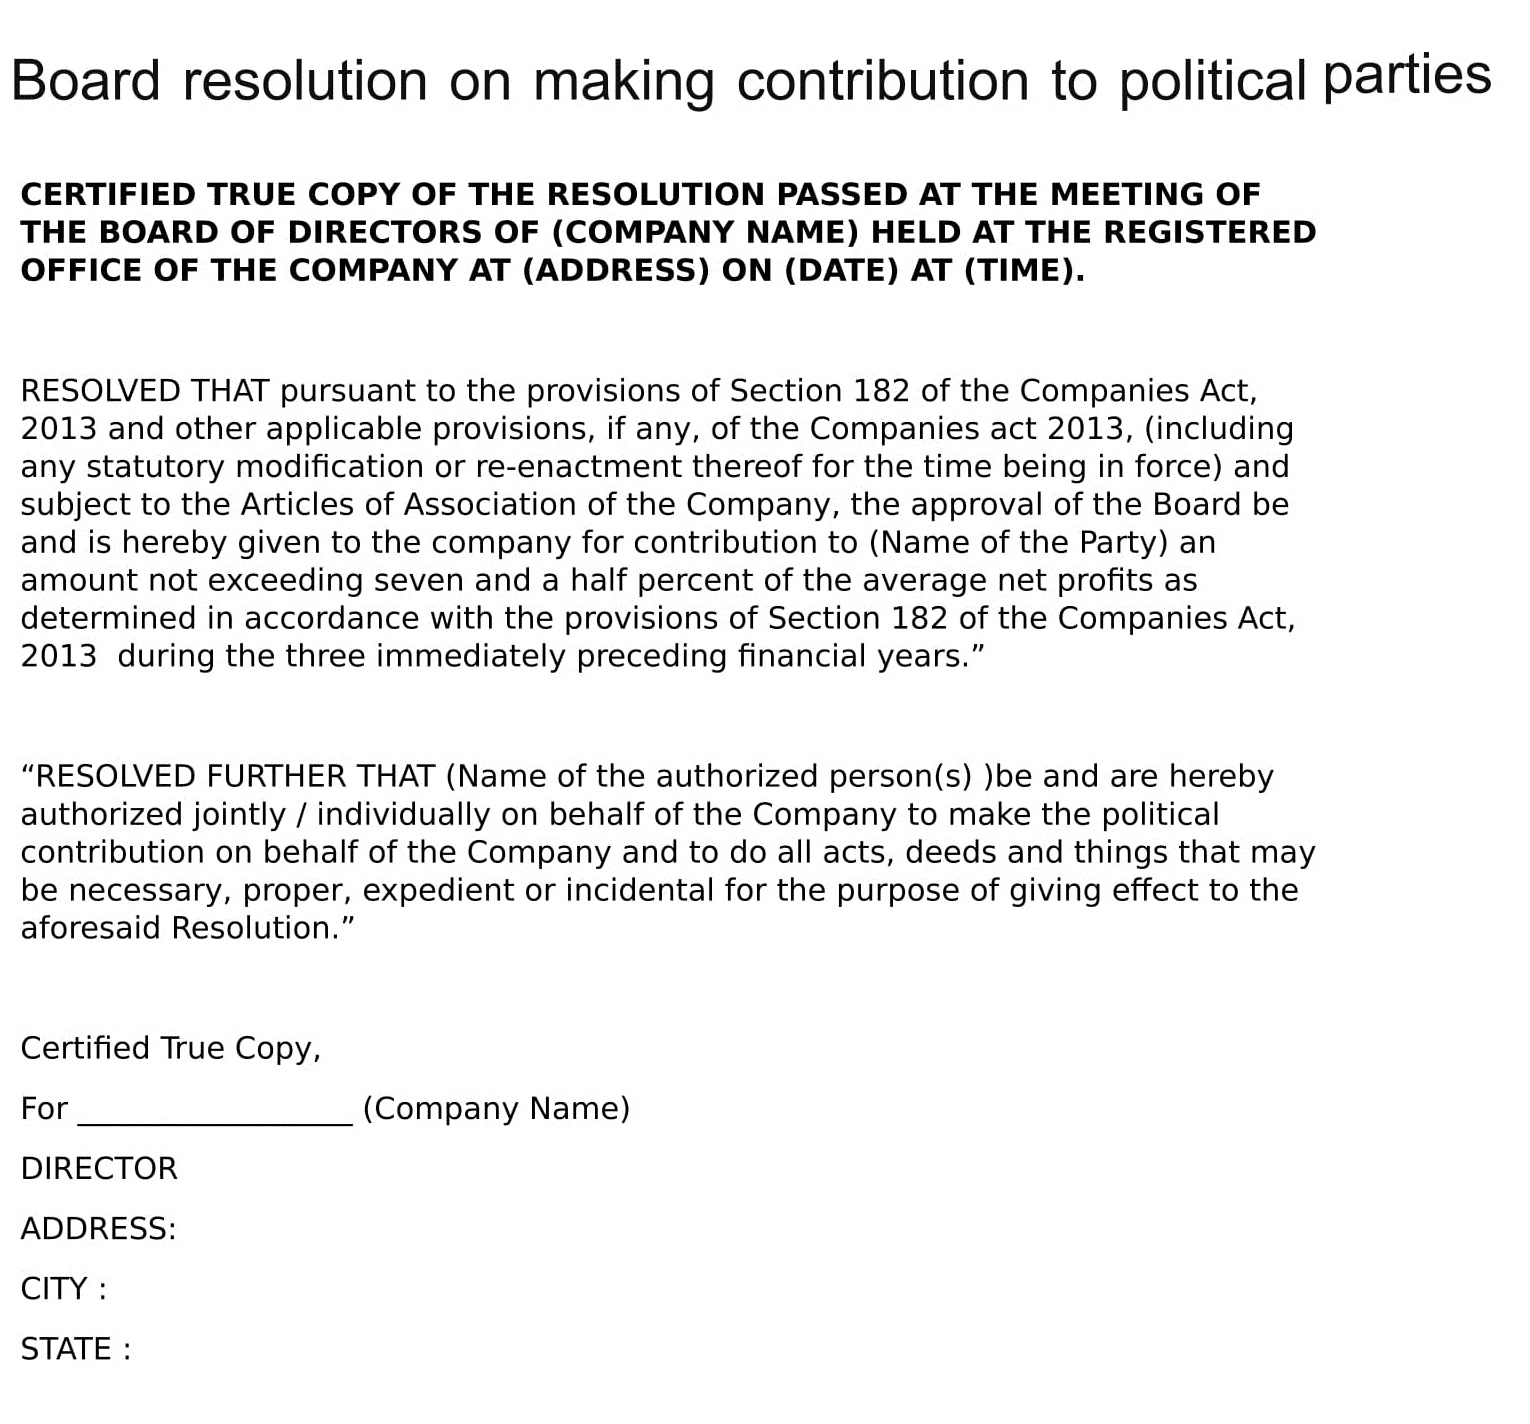 Board resolution on making contribution to political parties-1.jpg